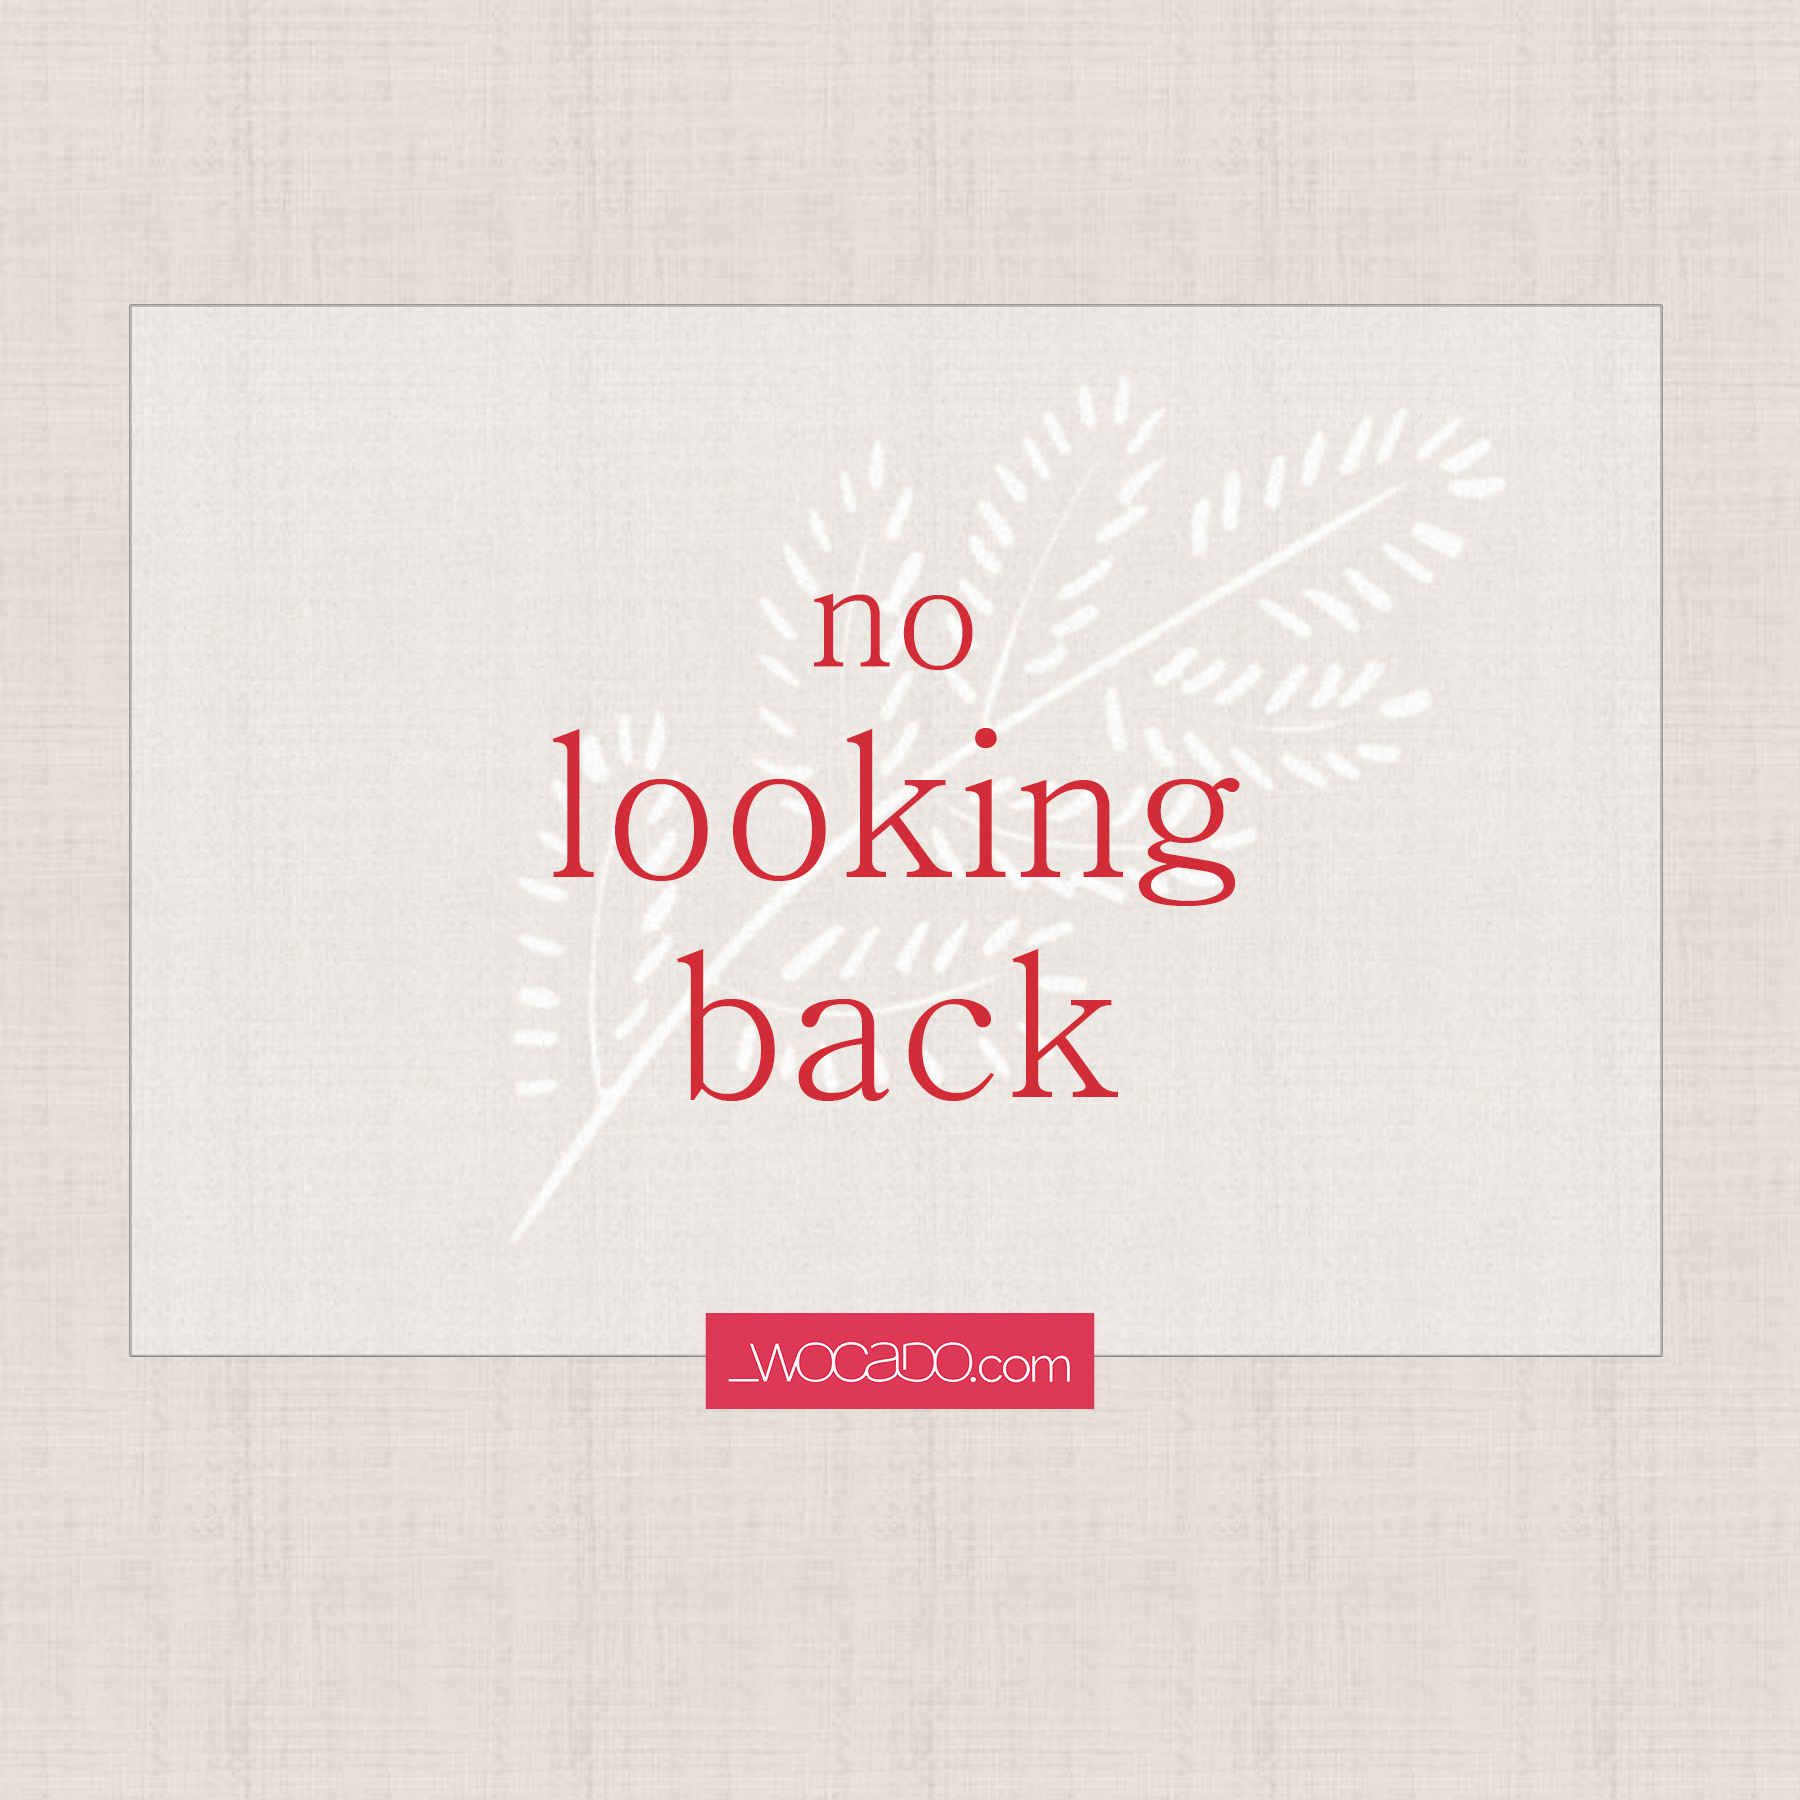 No Looking Back - video by WOCADO